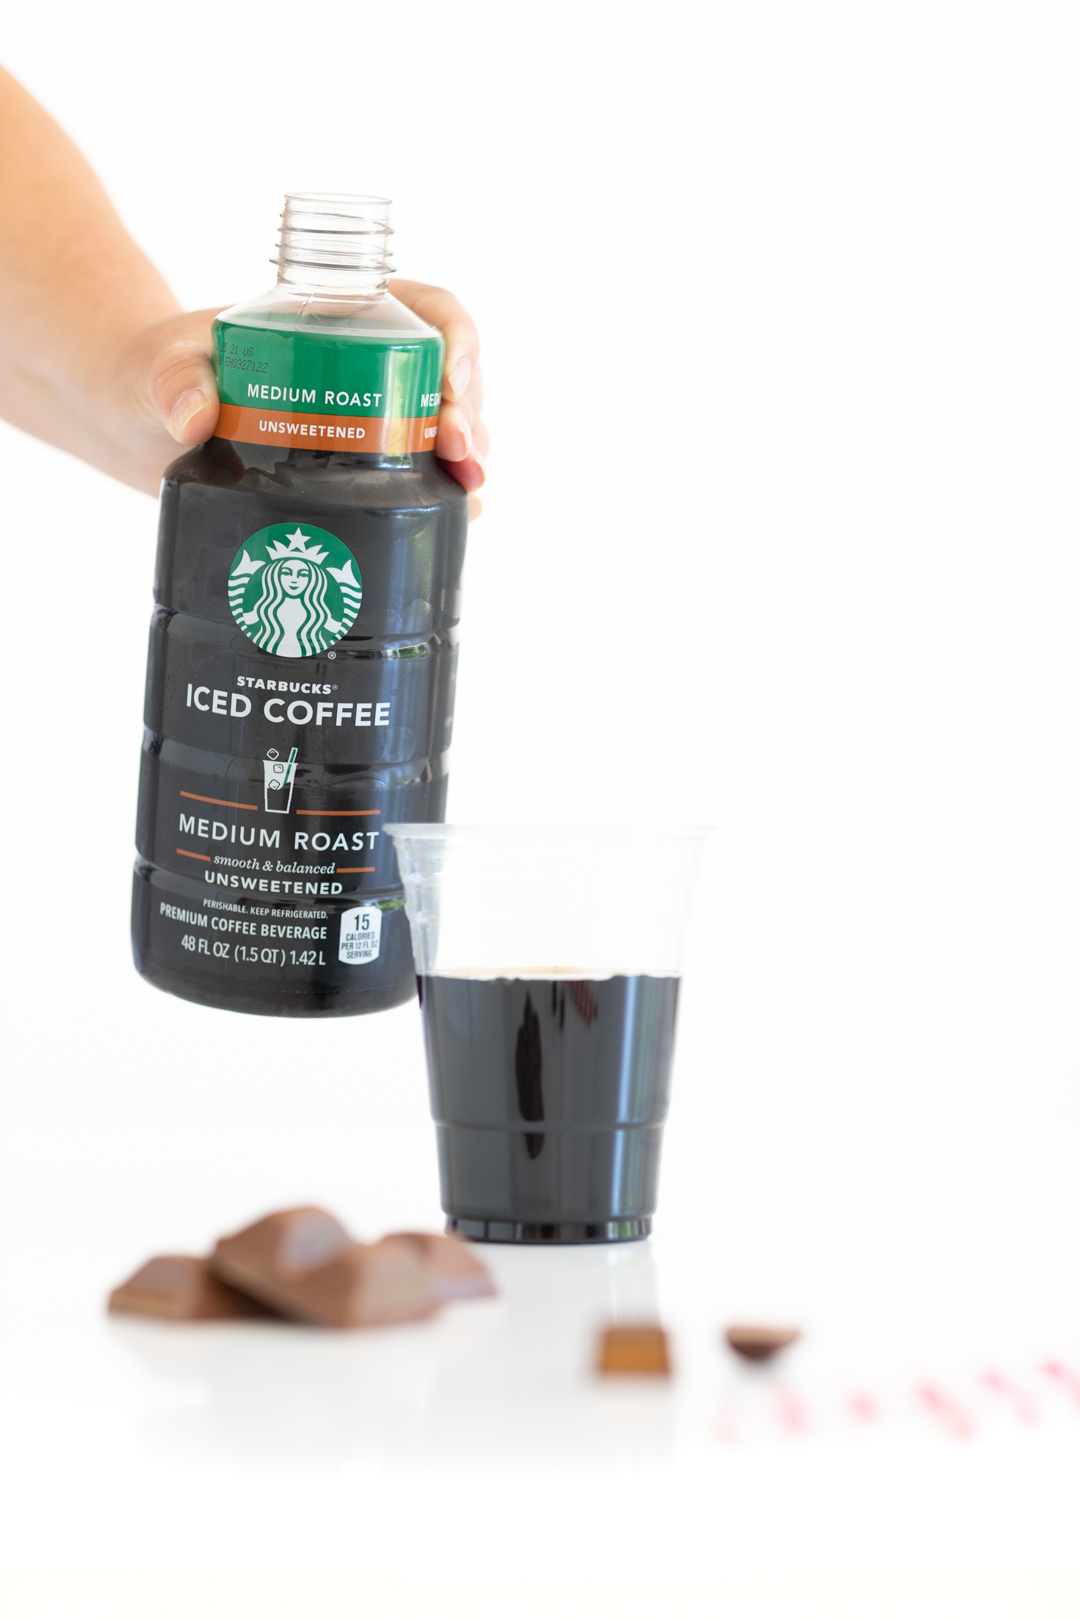 pouring a glass of starbucks iced coffee into a cup